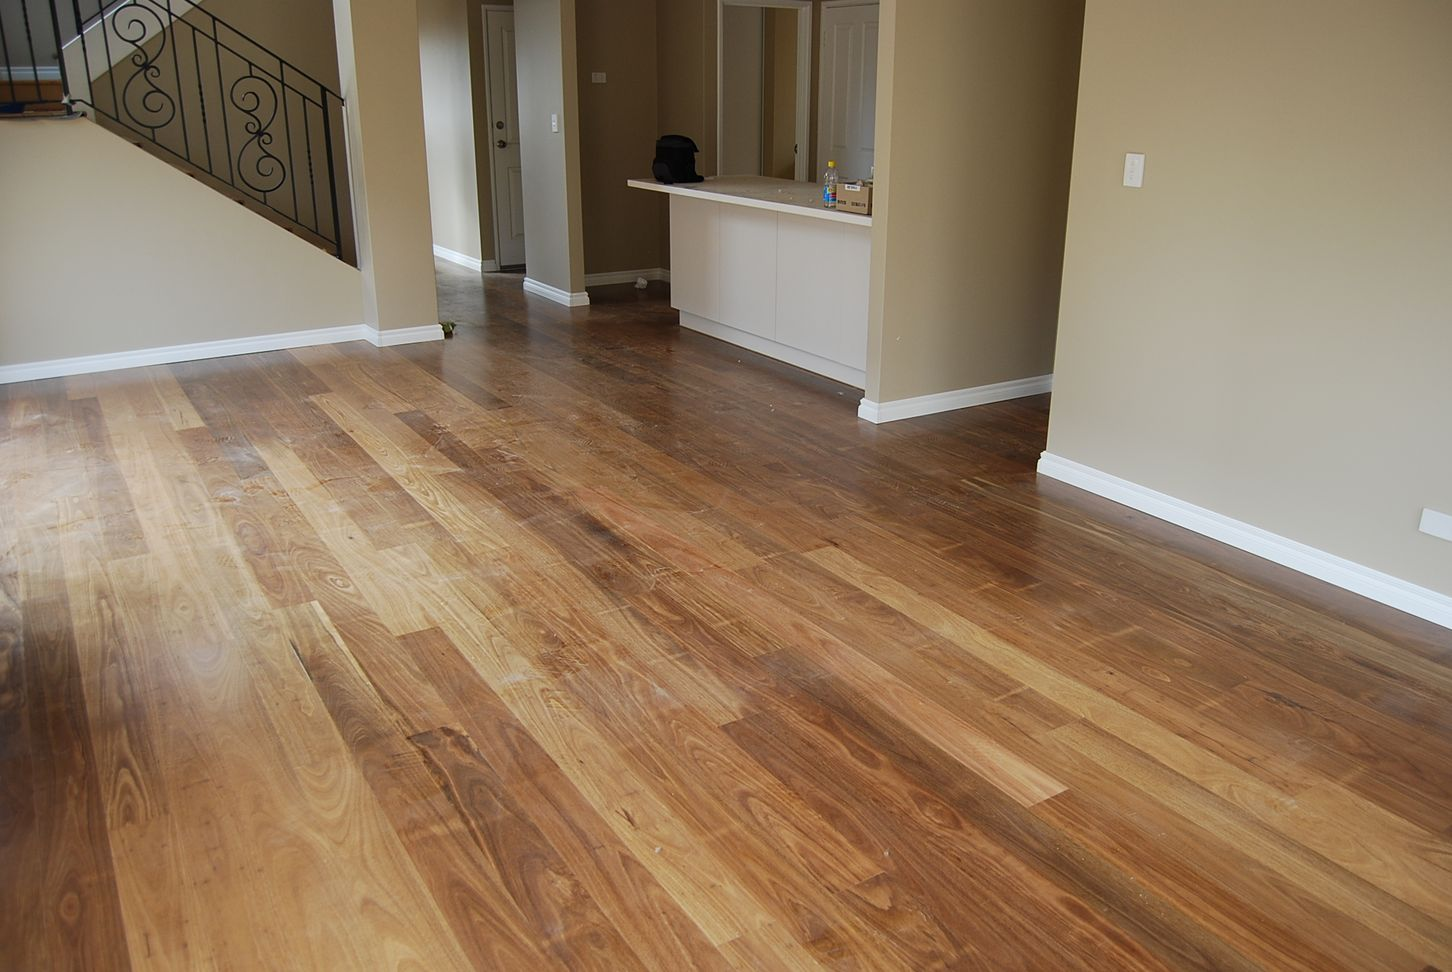 Timber flooring carpentry construction services perth for Prefinished timber flooring